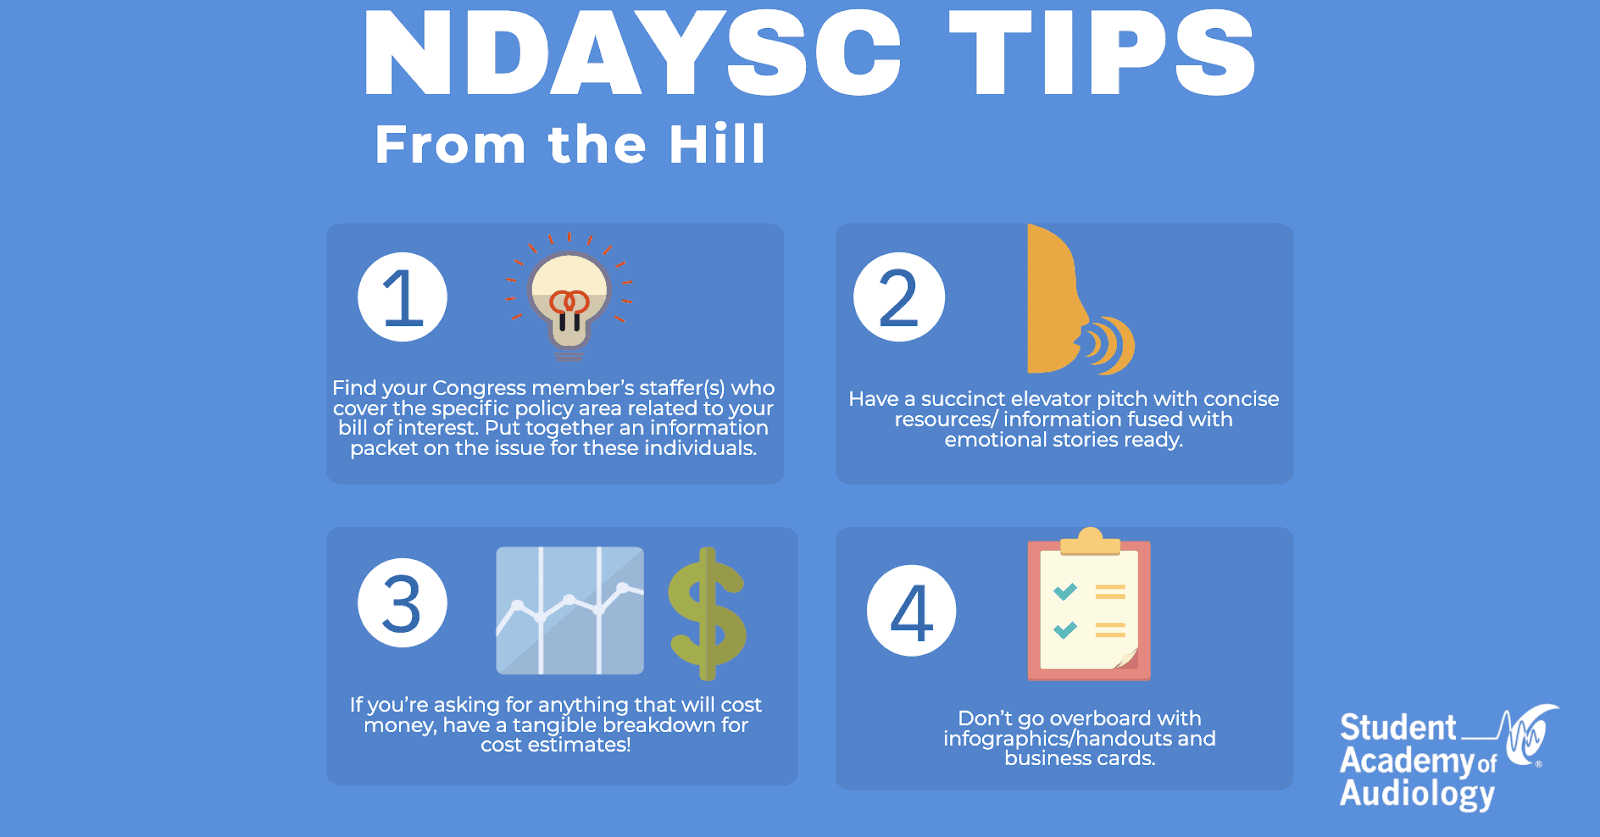 Tips From the Hill